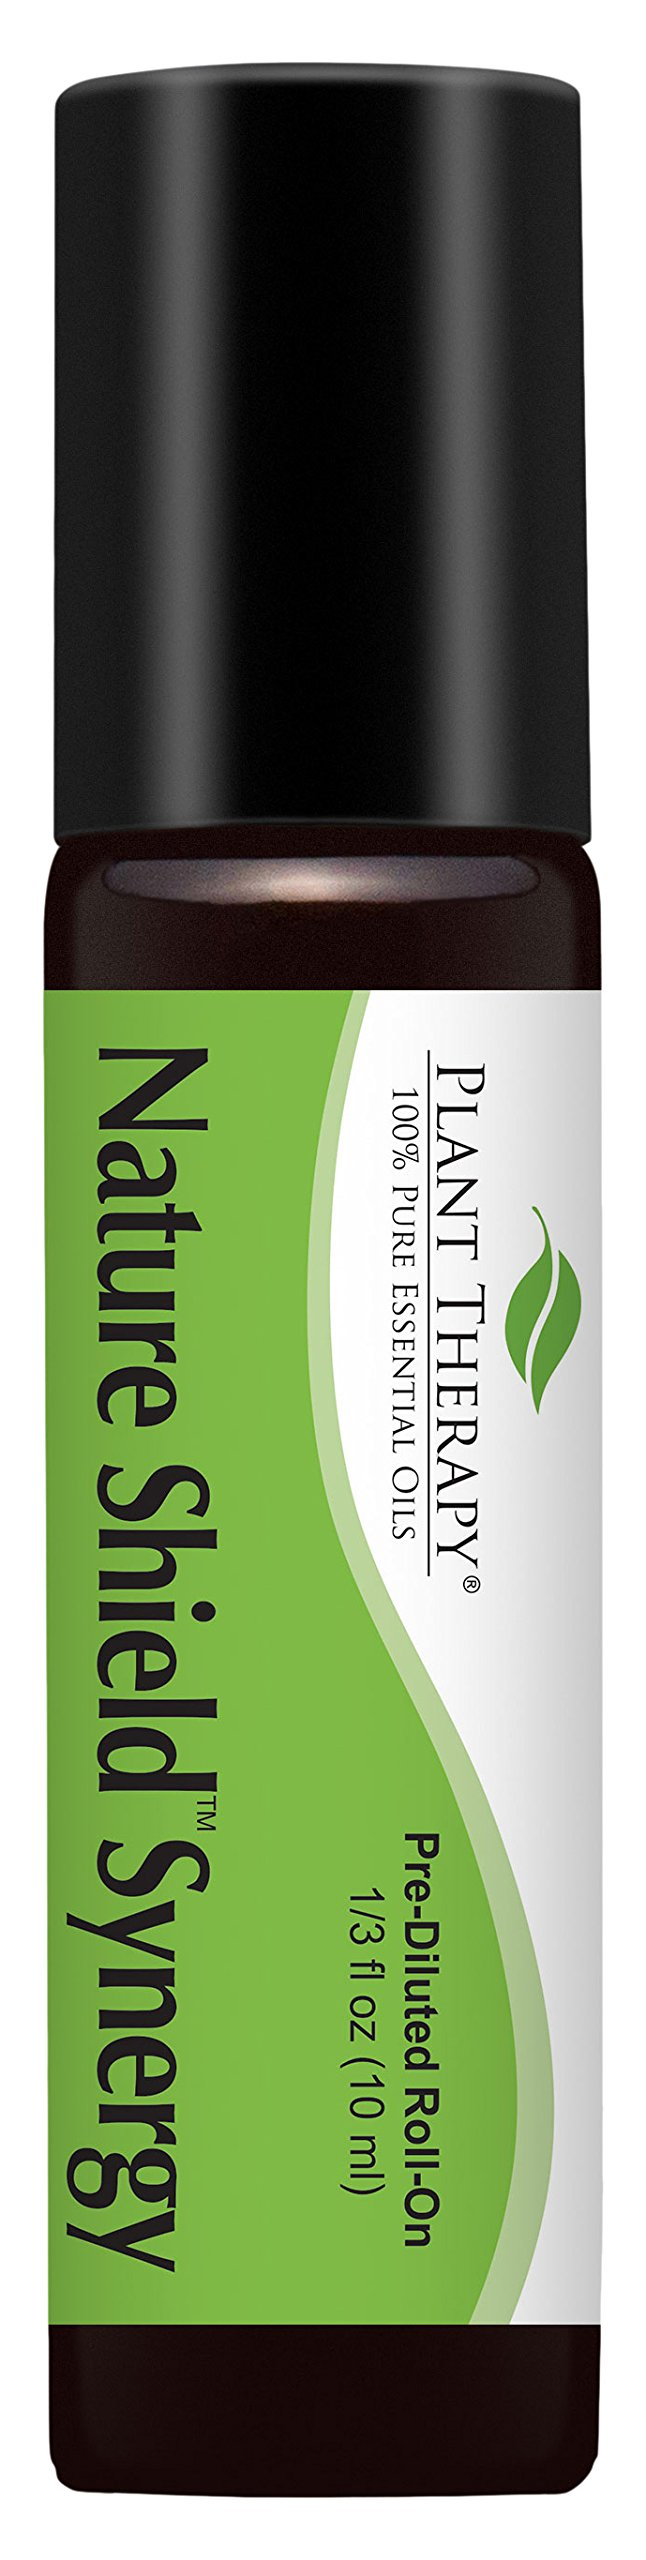 Plant Therapy Nature Shield Synergy Essential Oil 100% Pure, Undiluted, Therapeutic Grade (Roll-On)